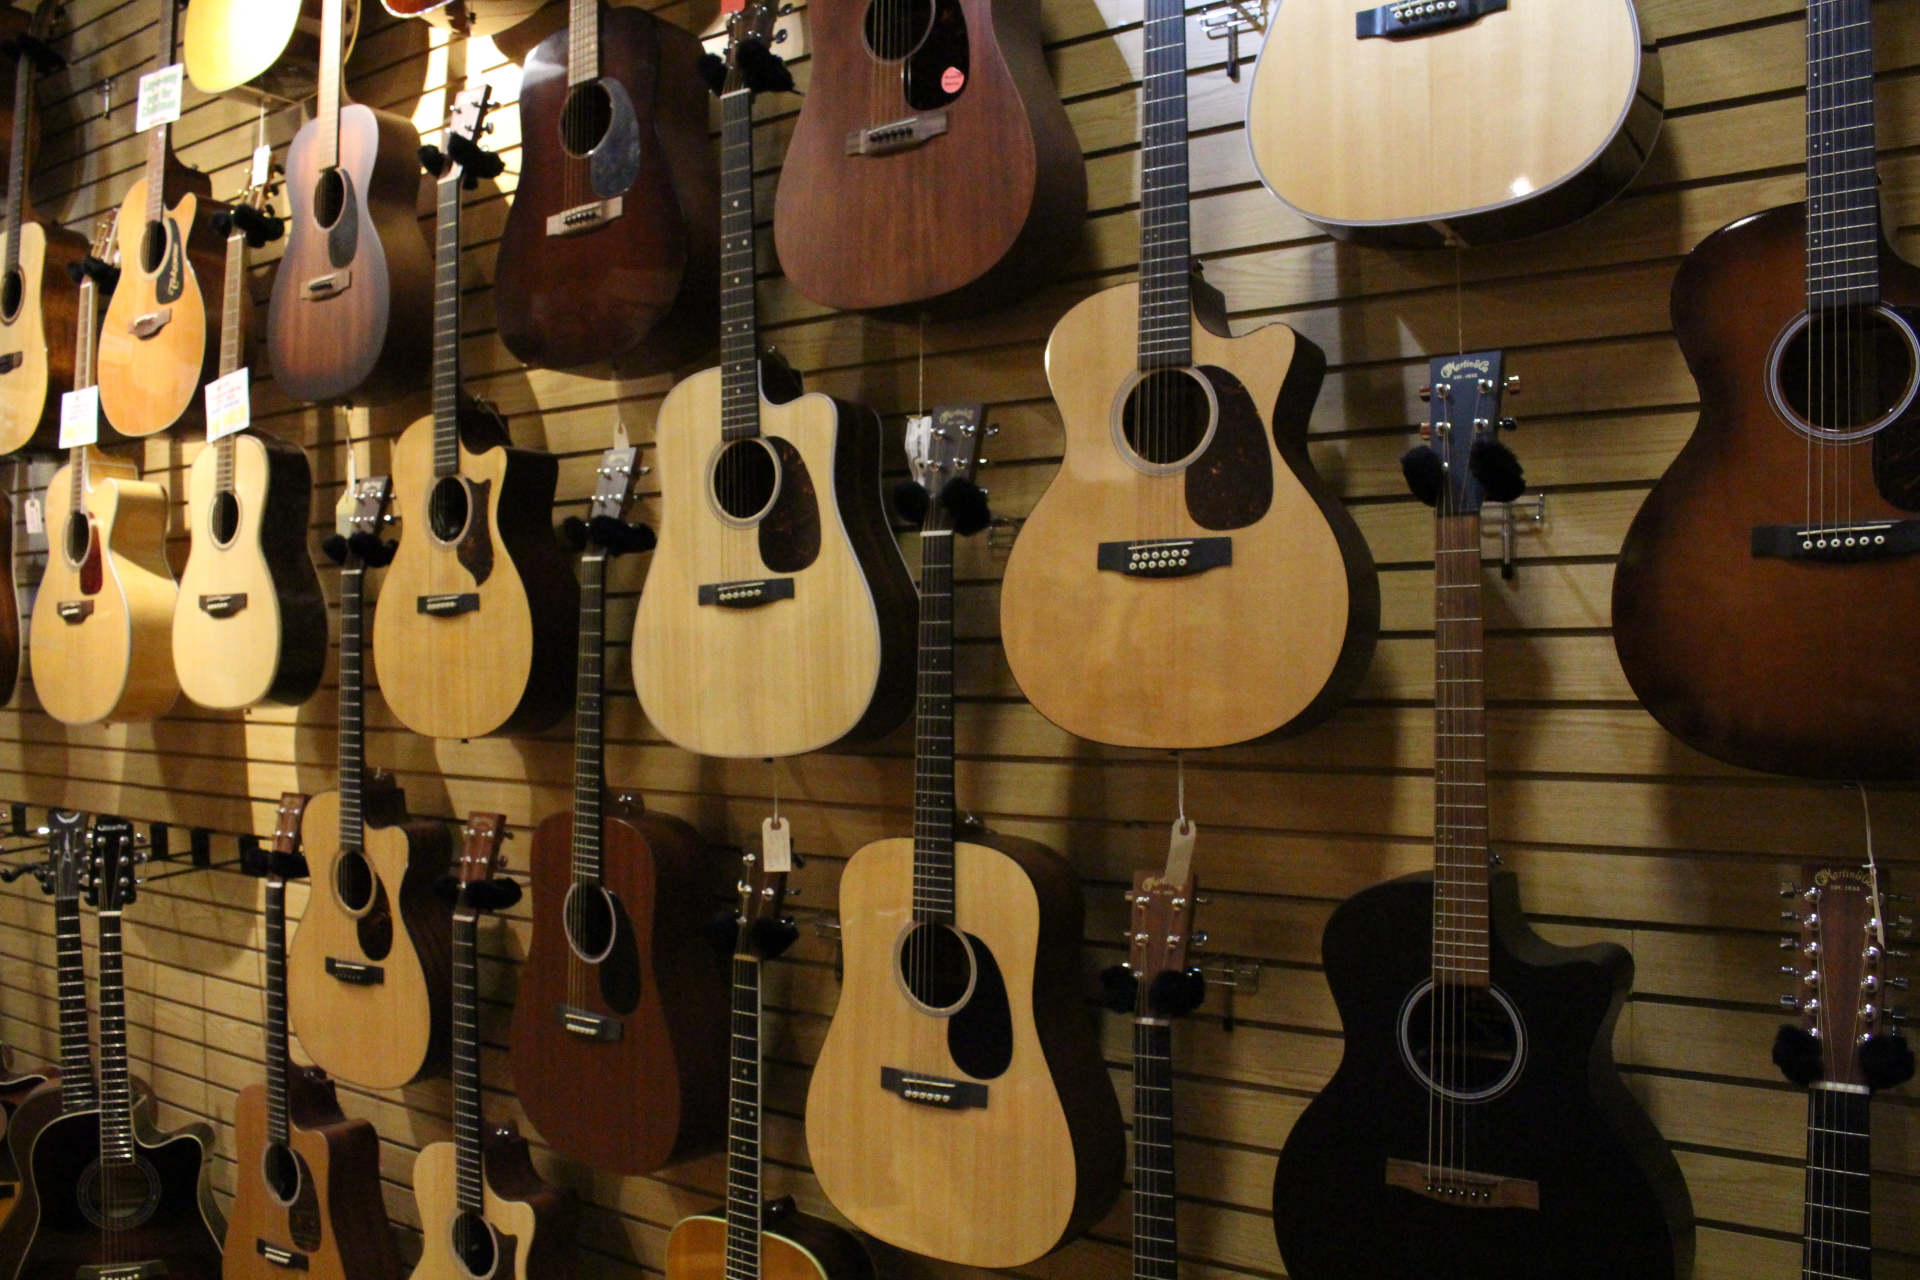 Check Out Our Martin Guitar Wall!